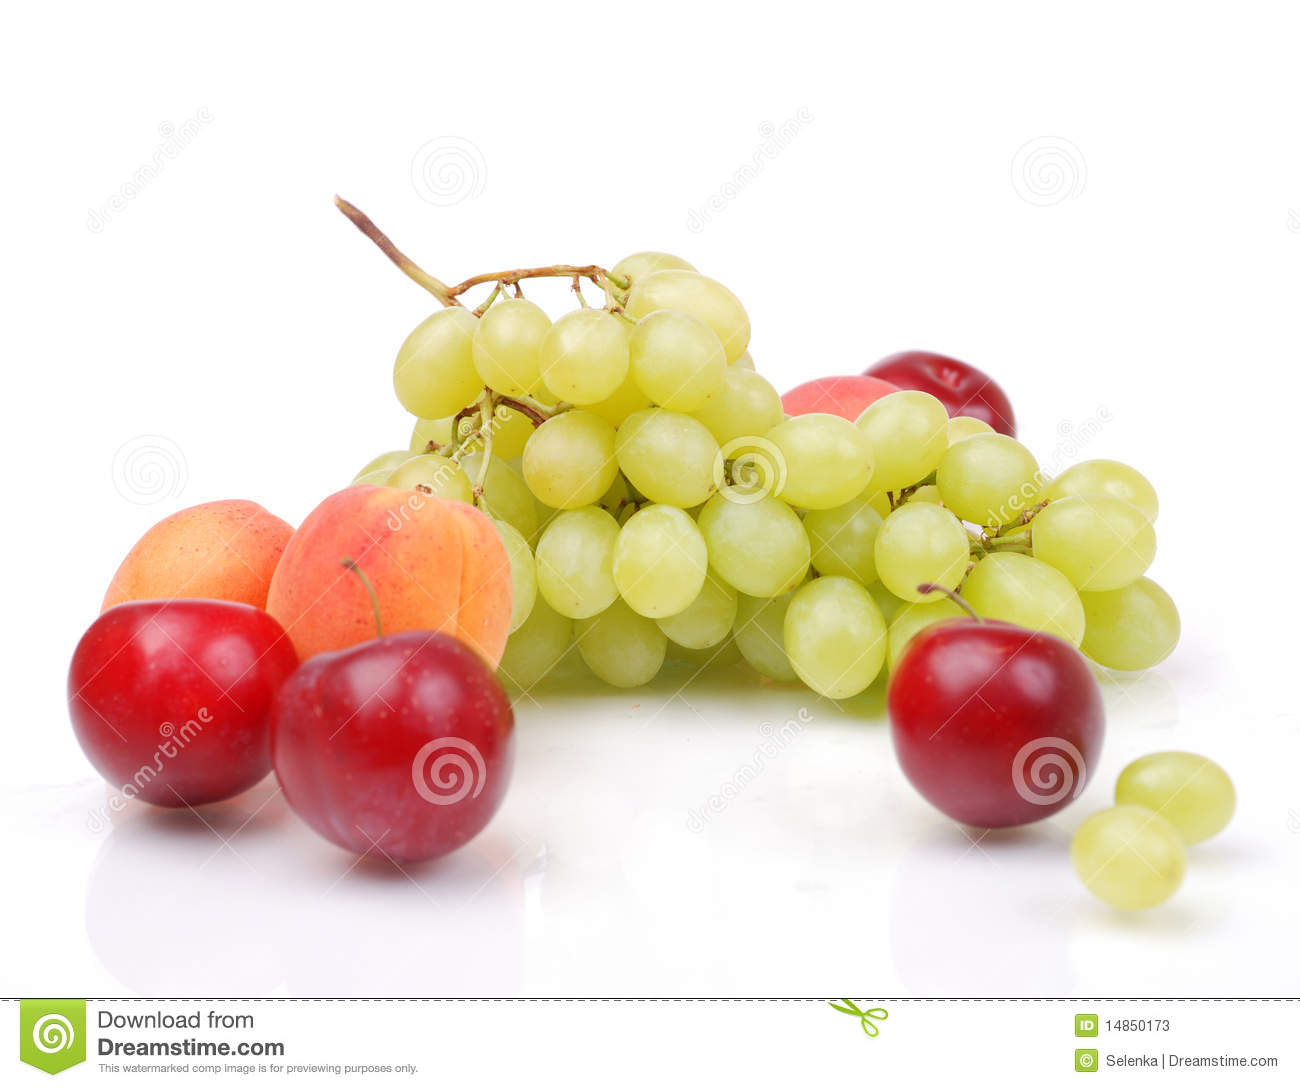 Grapes, apricots and plums